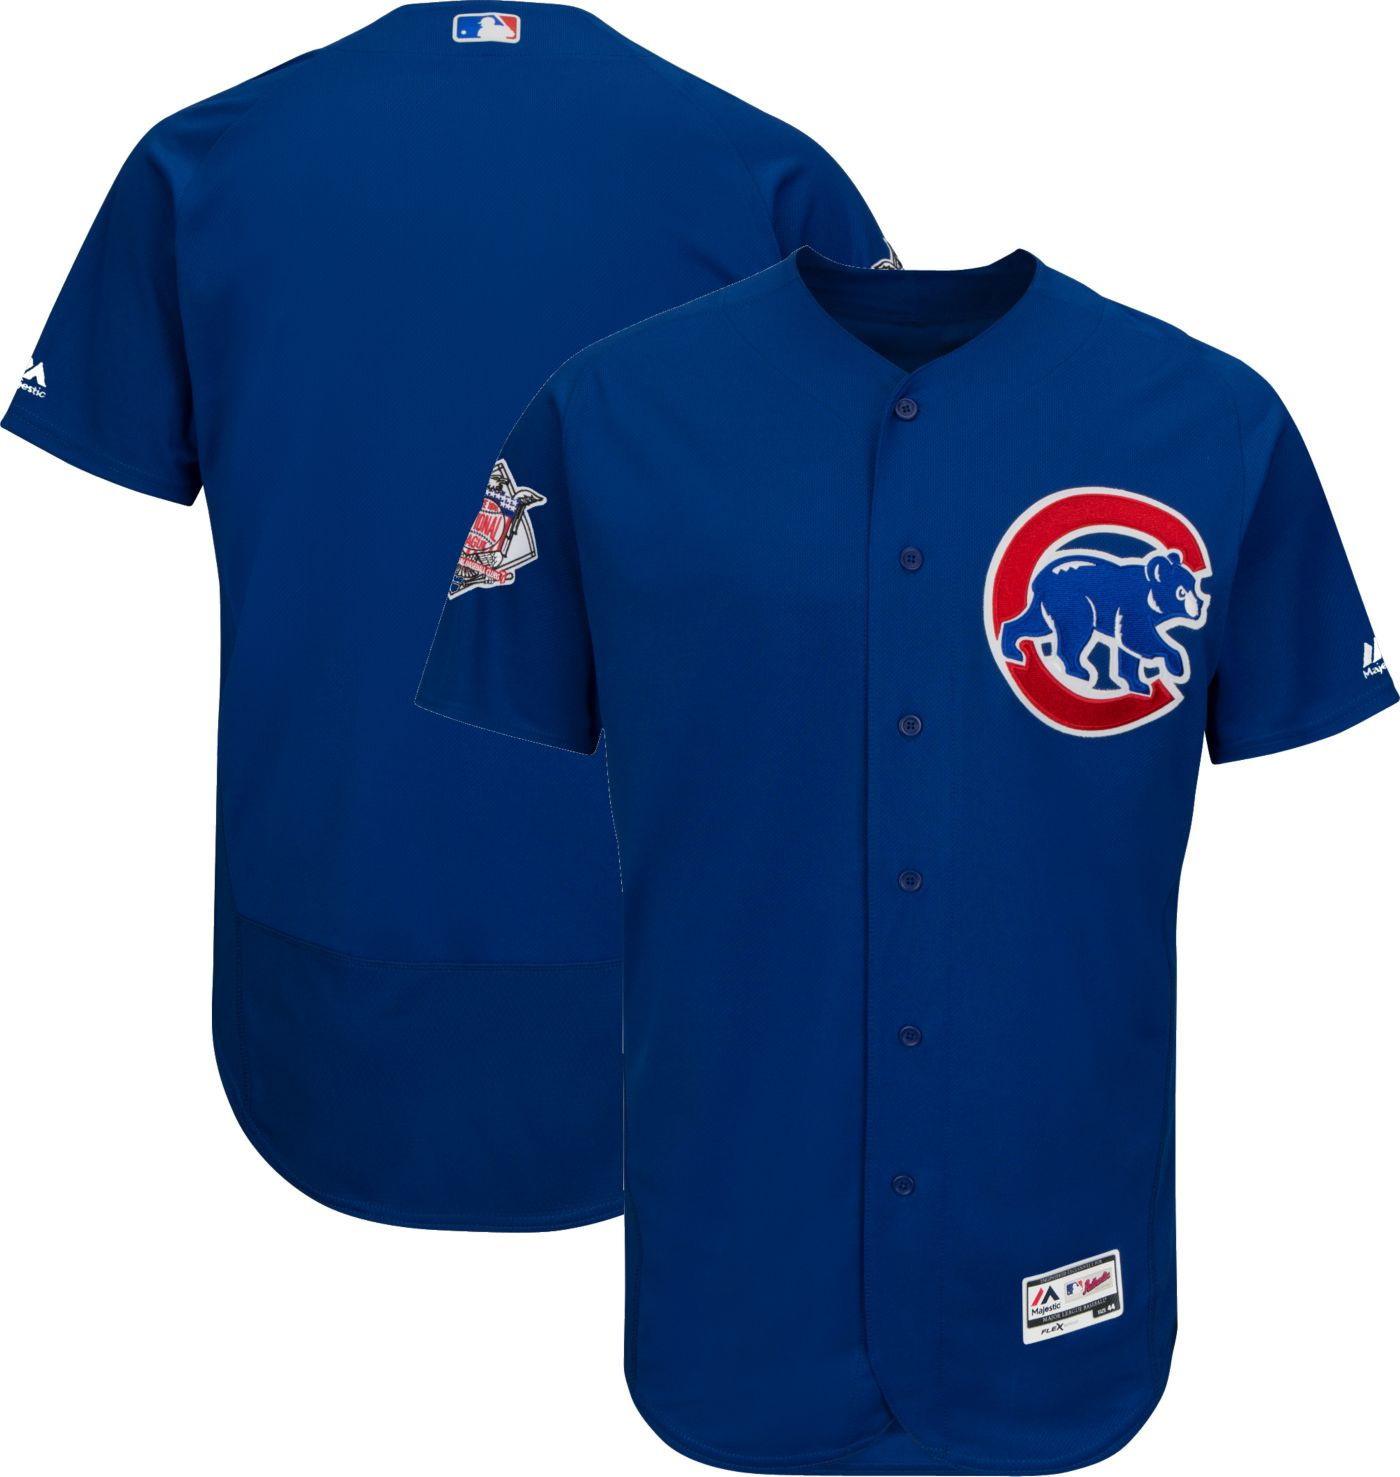 Majestic Men's Authentic Chicago Cubs Alternate Royal Flex Base On-Field Jersey